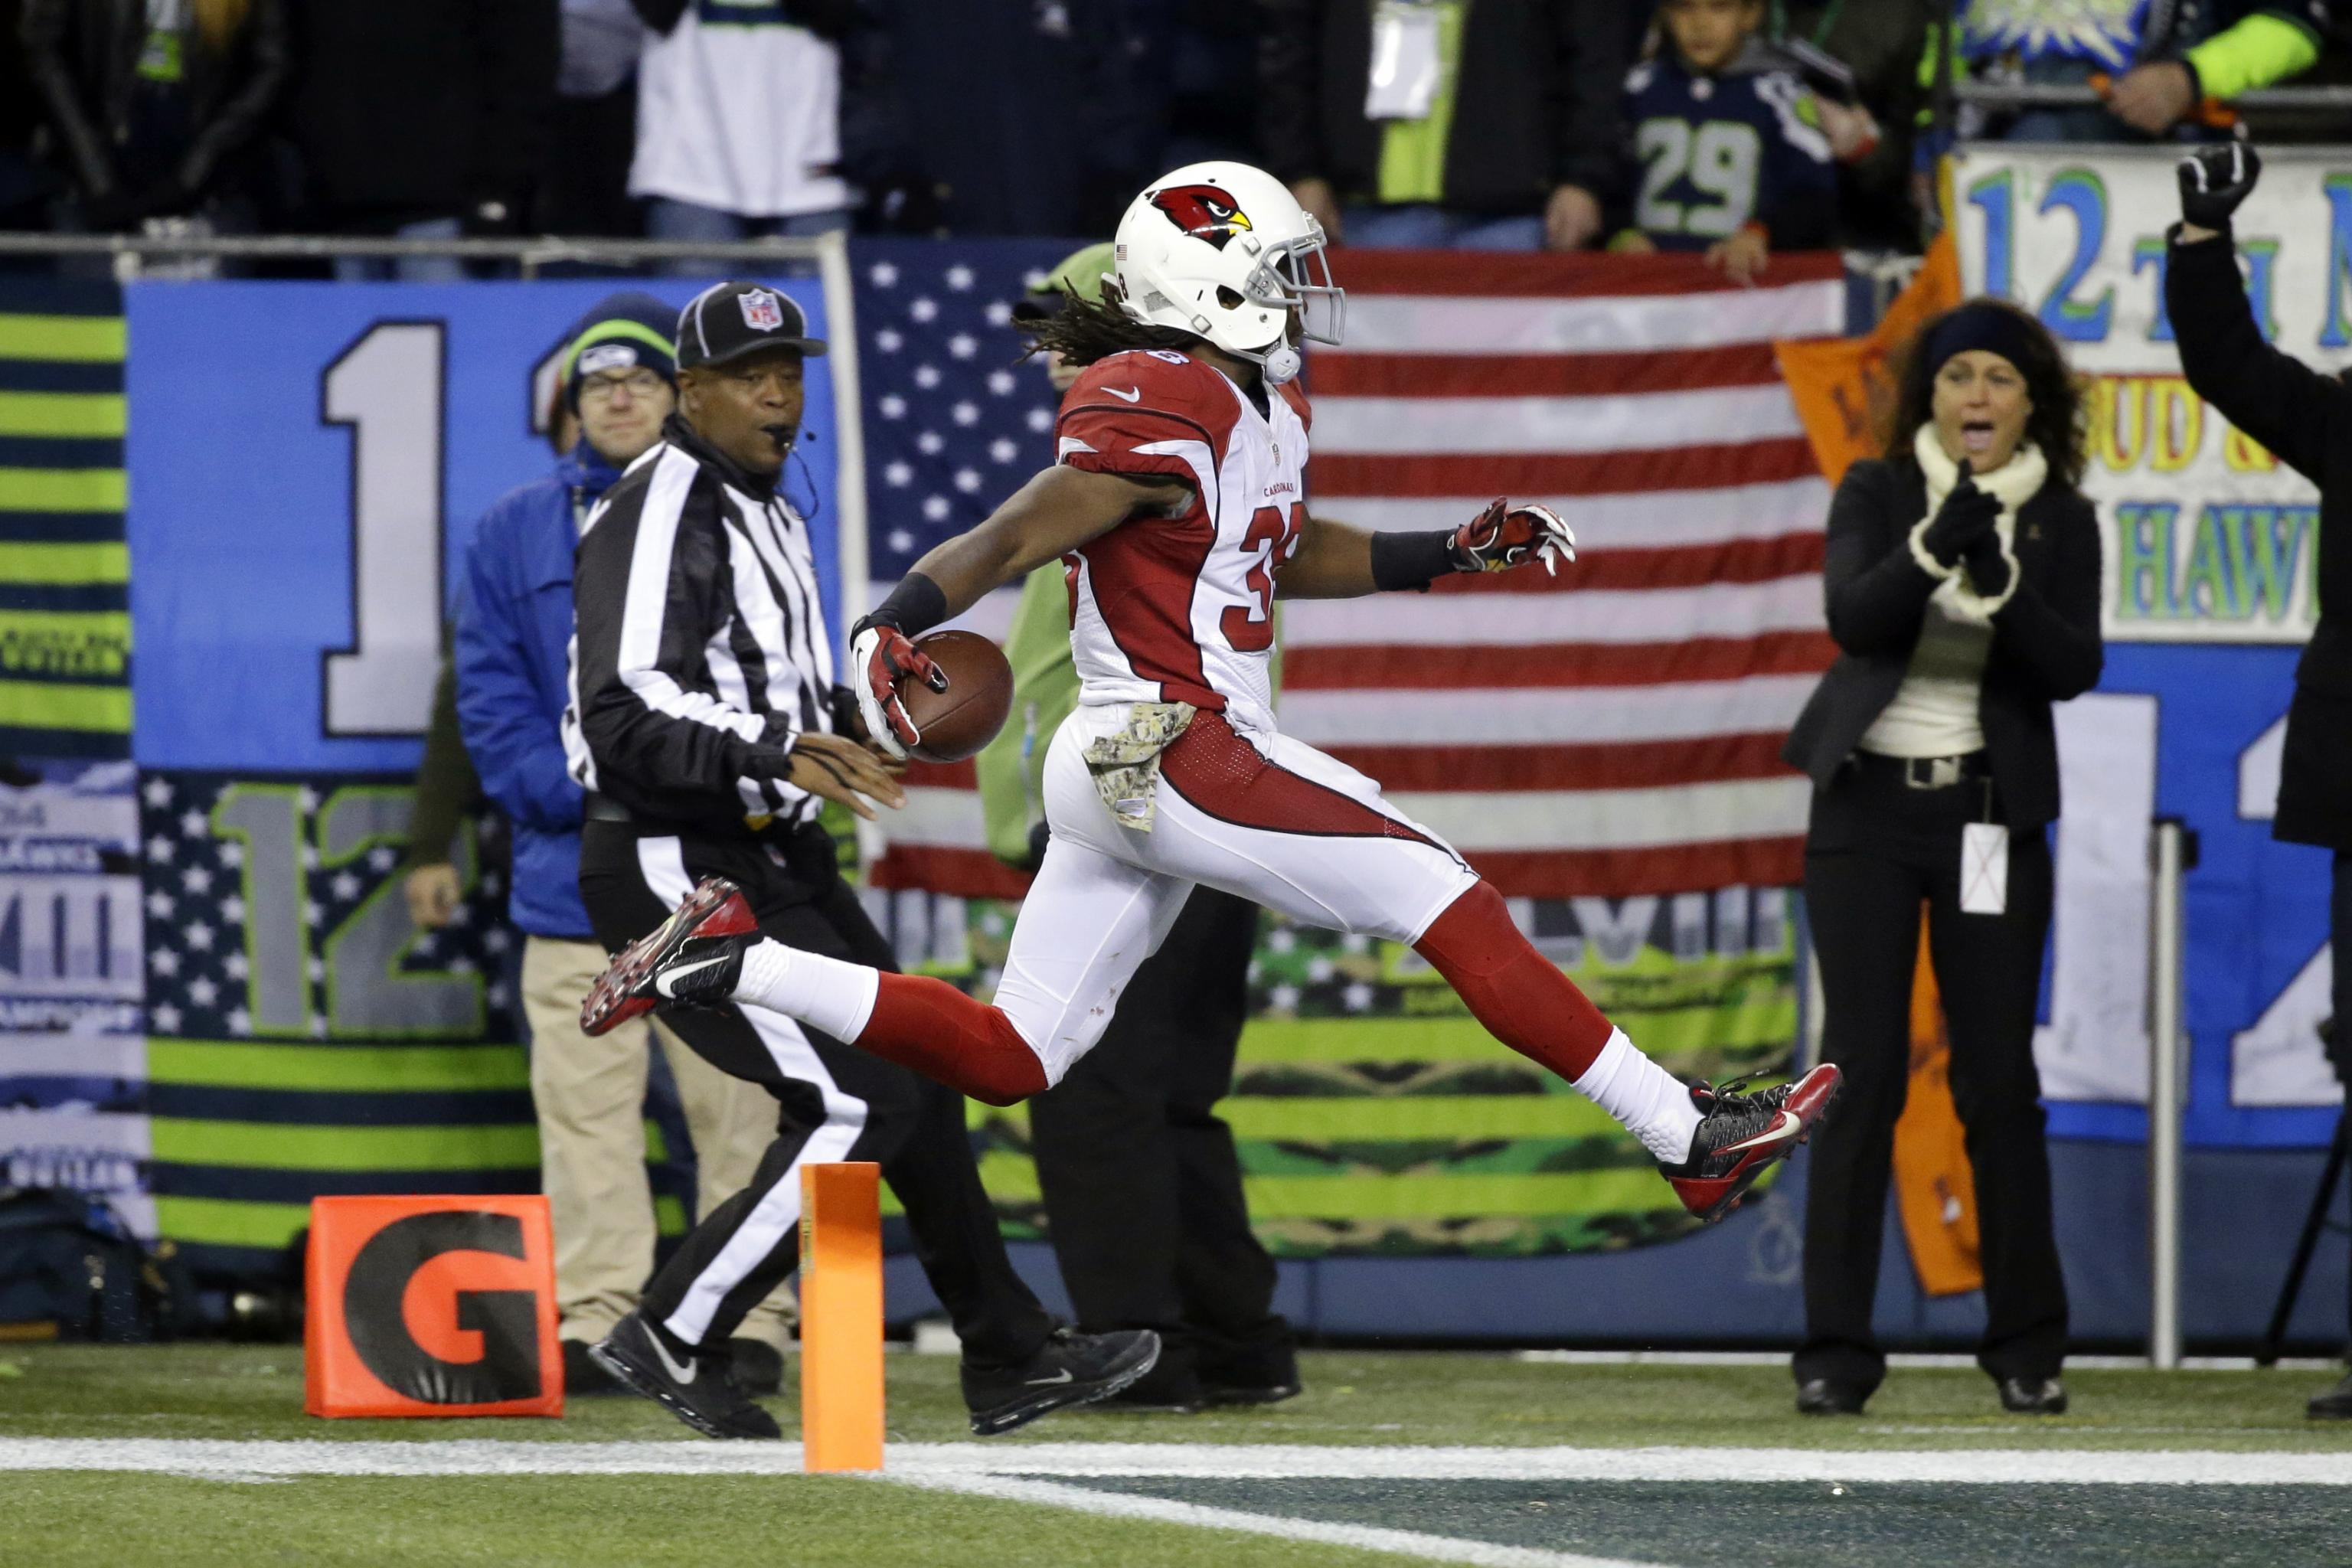 Cardinals Vs Seahawks Score And Twitter Reaction For Sunday Night Football Bleacher Report Latest News Videos And Highlights